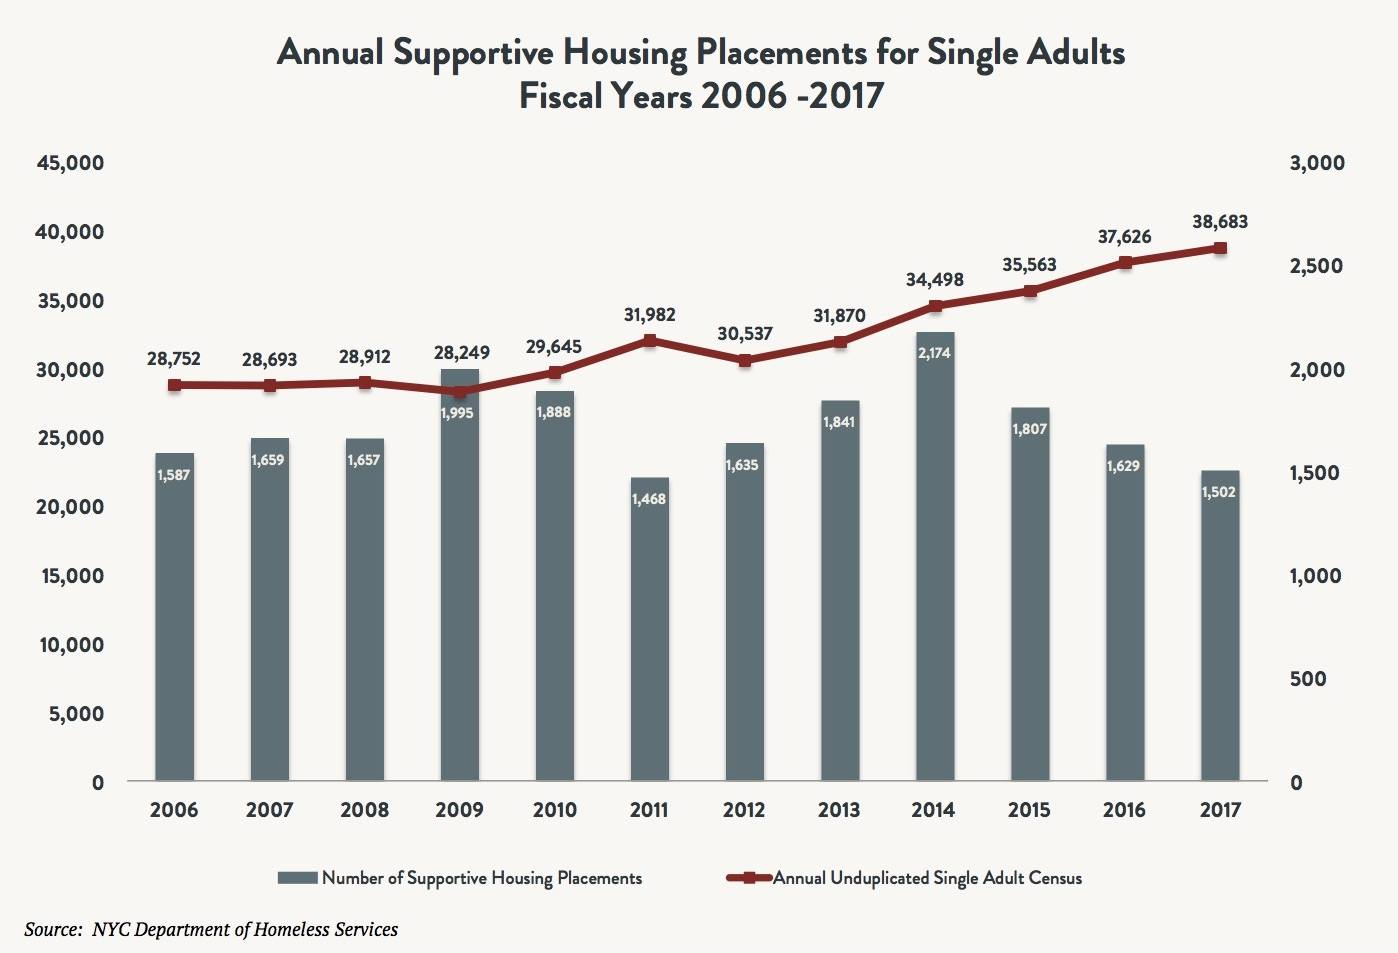 A bar and line graph comparing the number of annual supportive housing placements vs annual number of single homeless adults between 2006 and 2017.